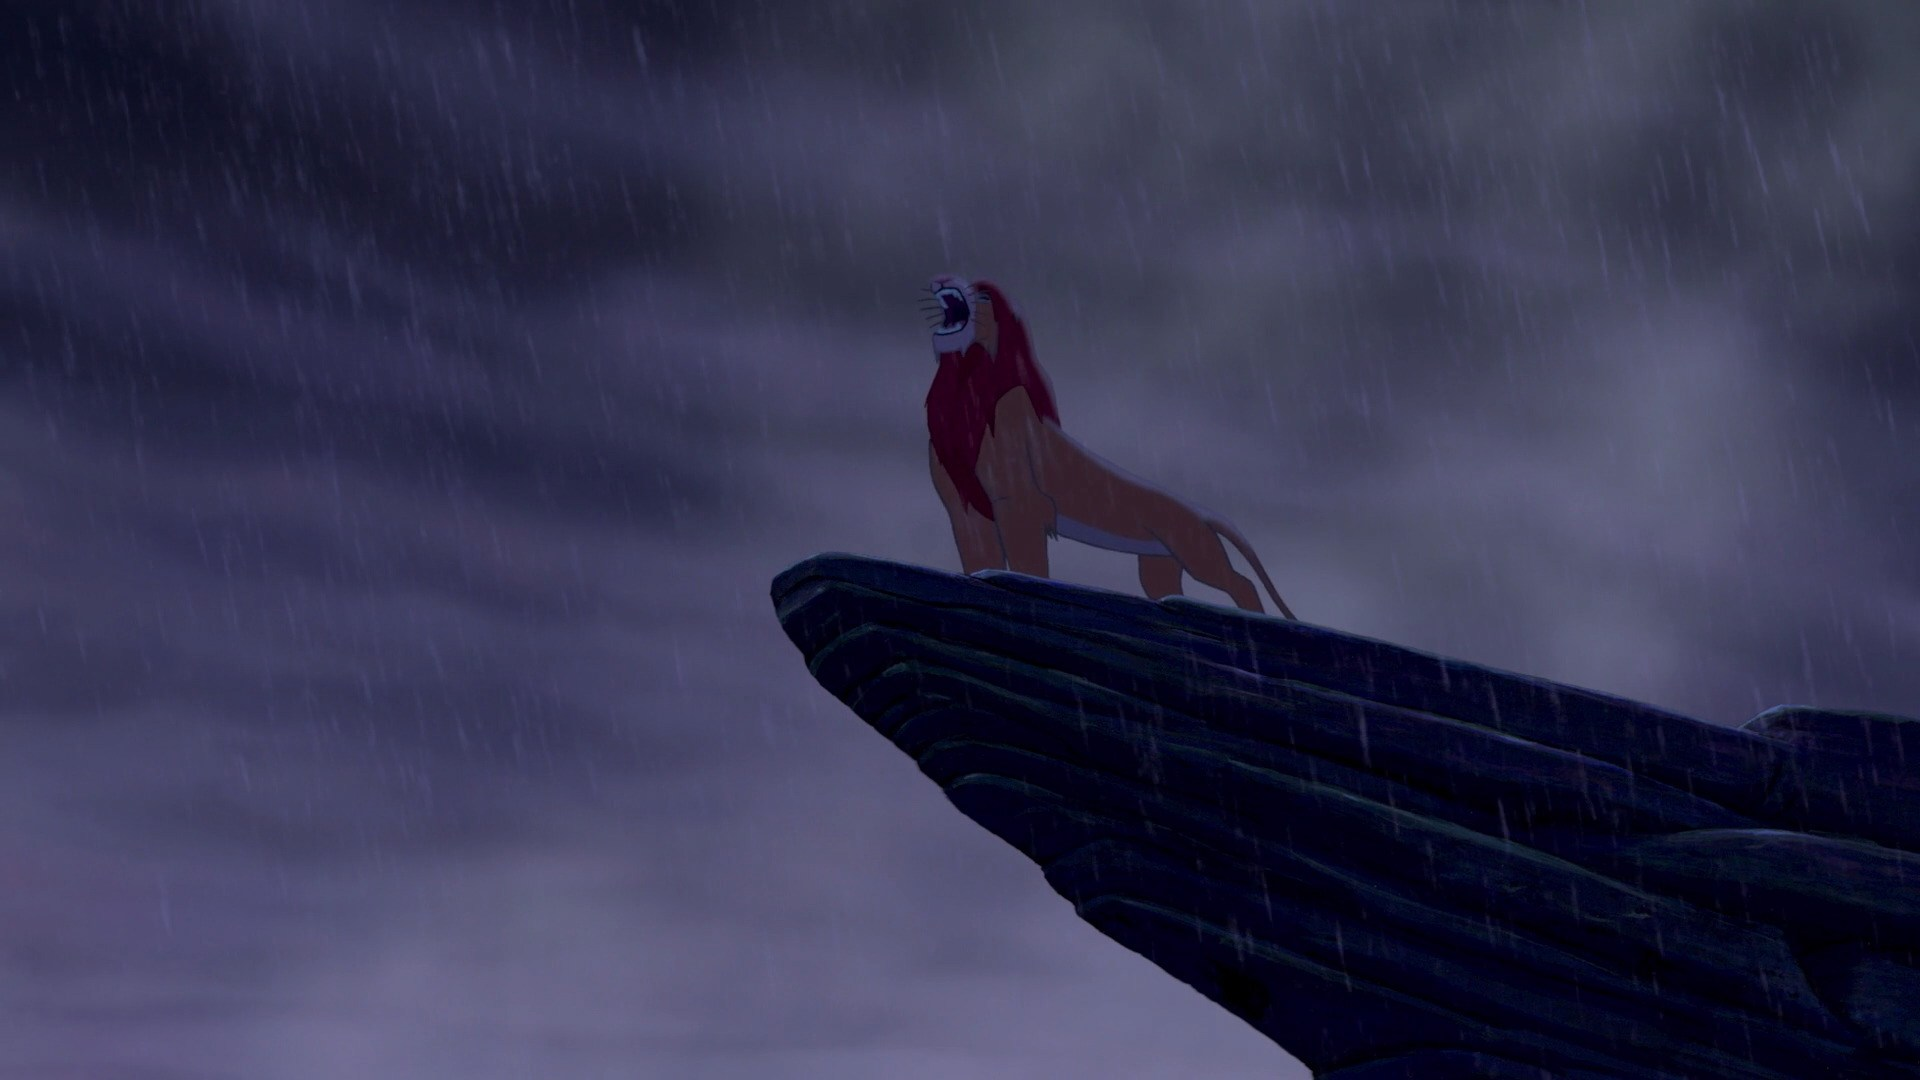 006lion-king-disneyscreencaps.com-9777.jpg